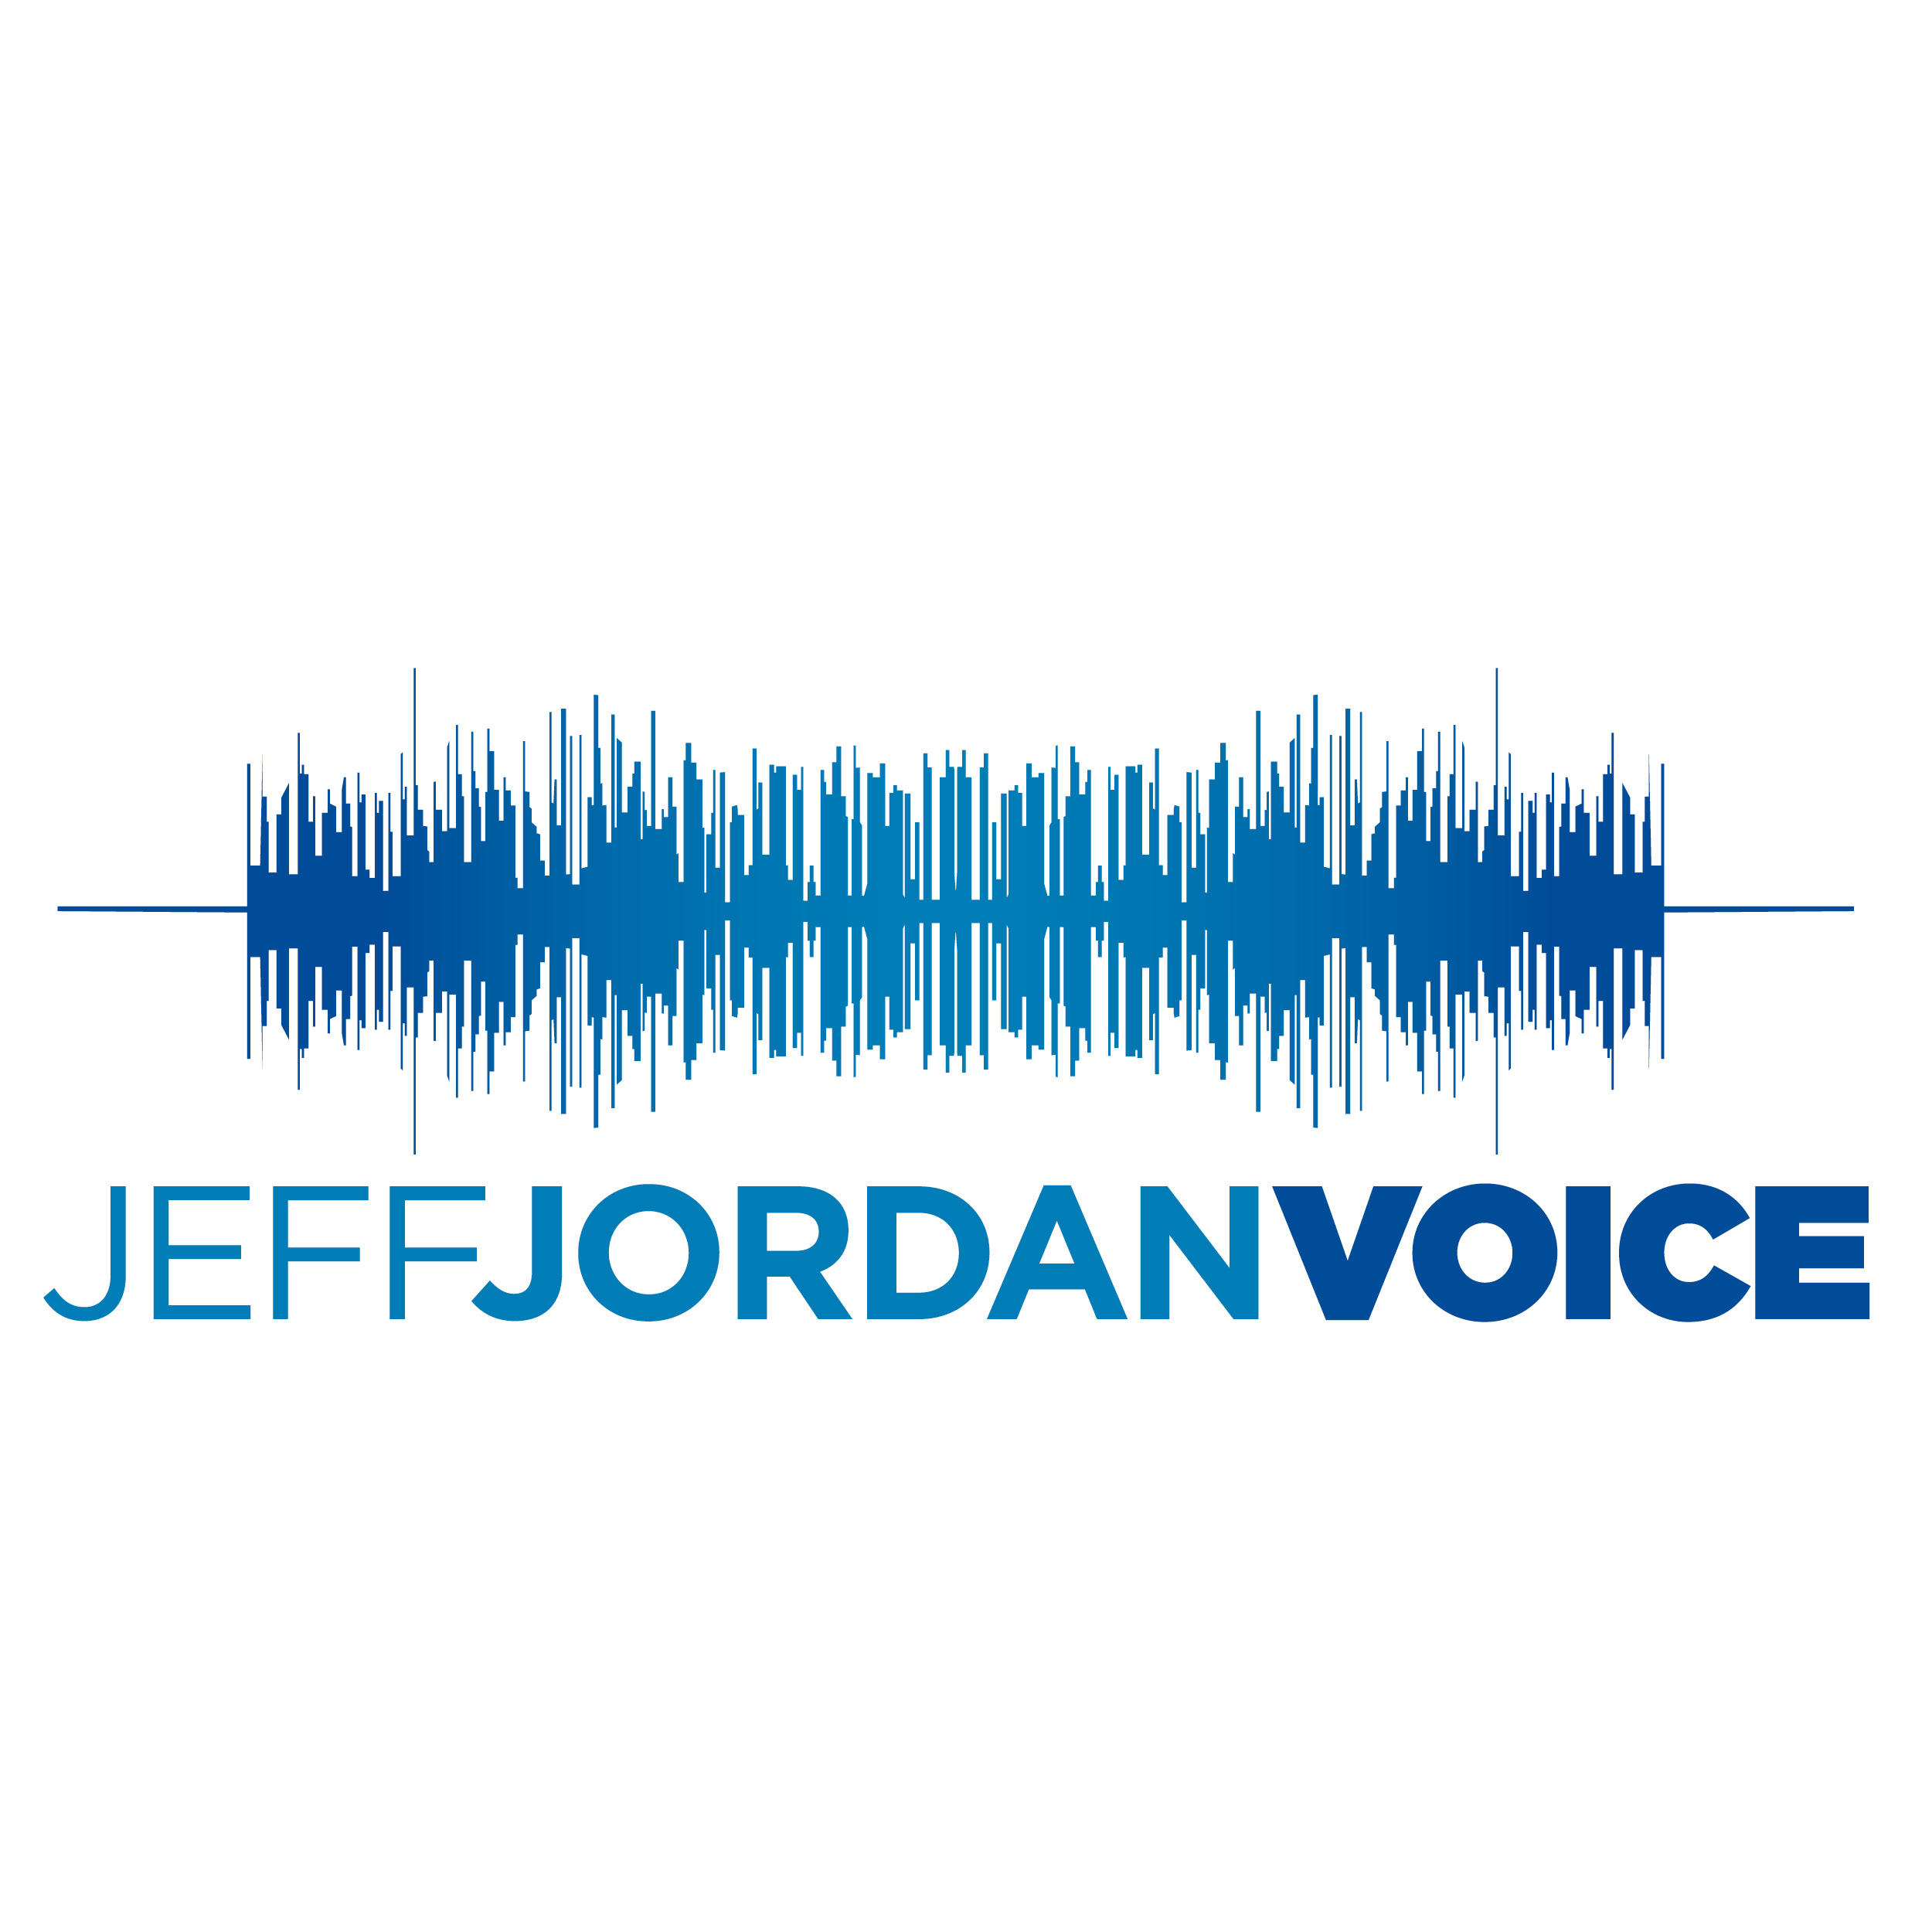 Jeff Jordan Voice logo